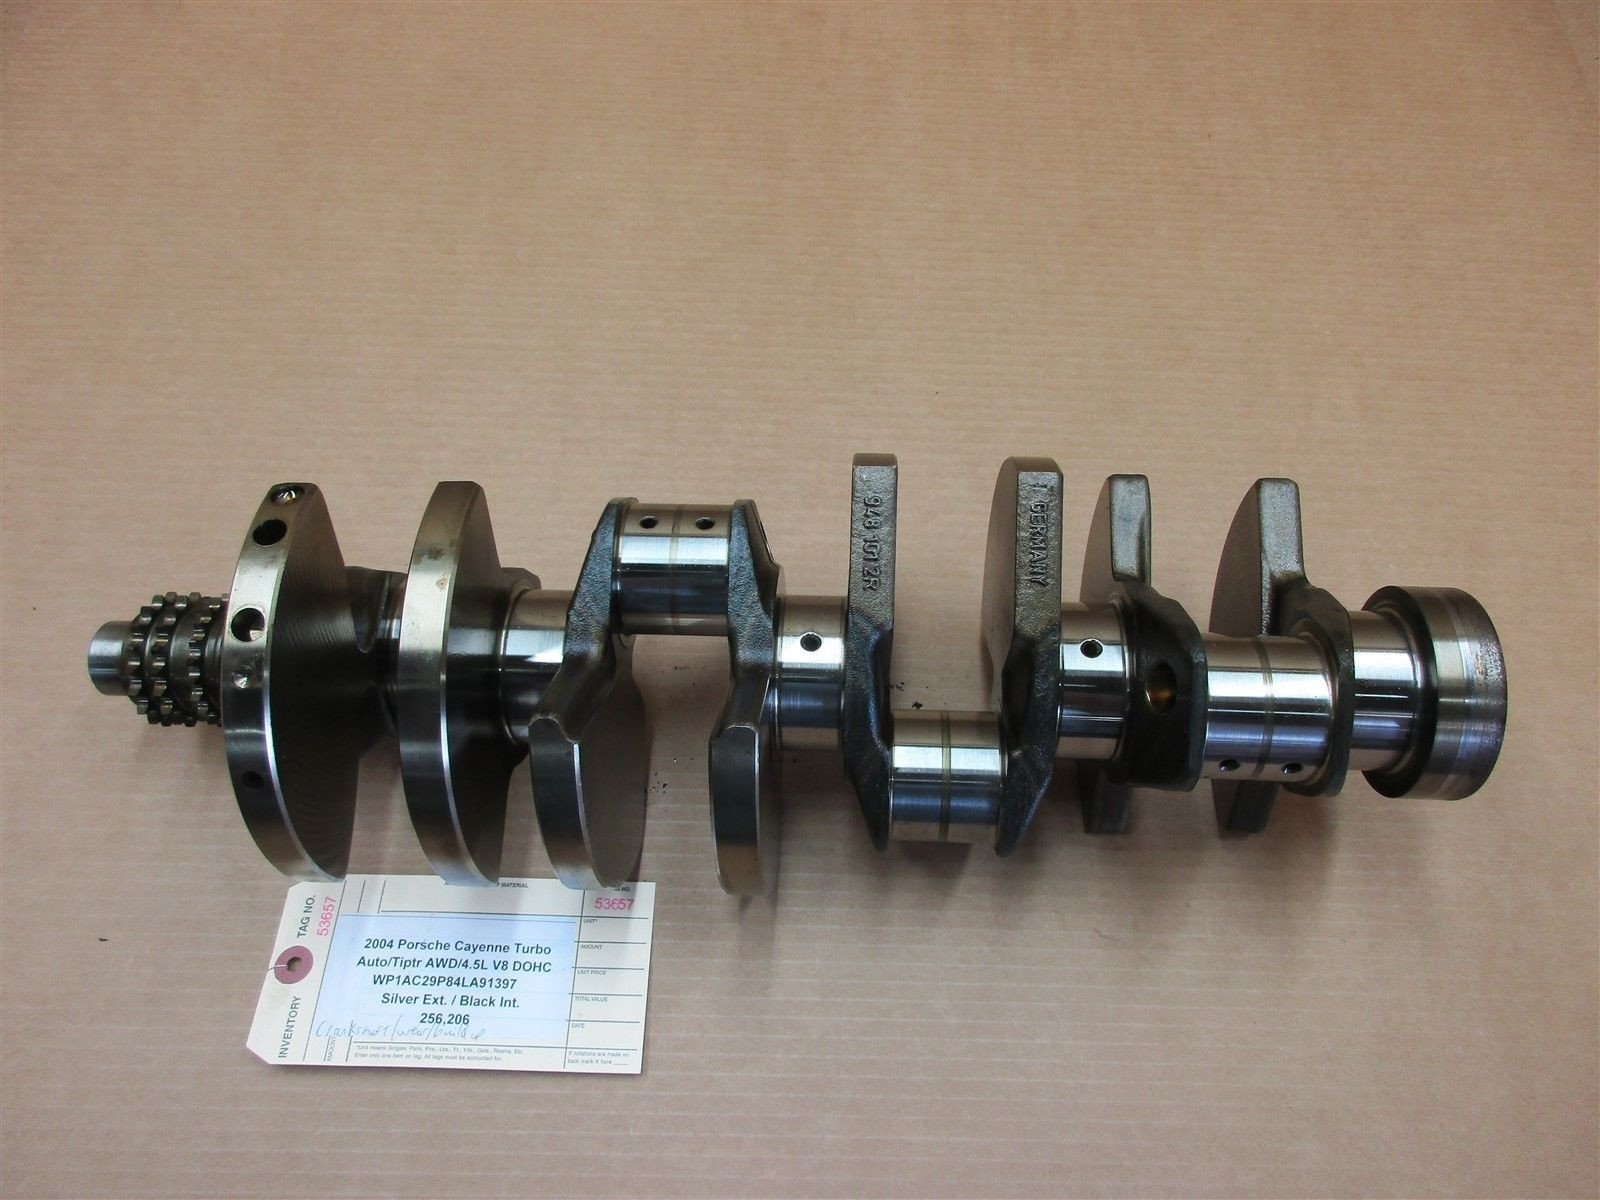 04 Cayenne Turbo Porsche 955 Engine 4.5 CRANK SHAFT CRANKSHAFT 9481012R 256,206